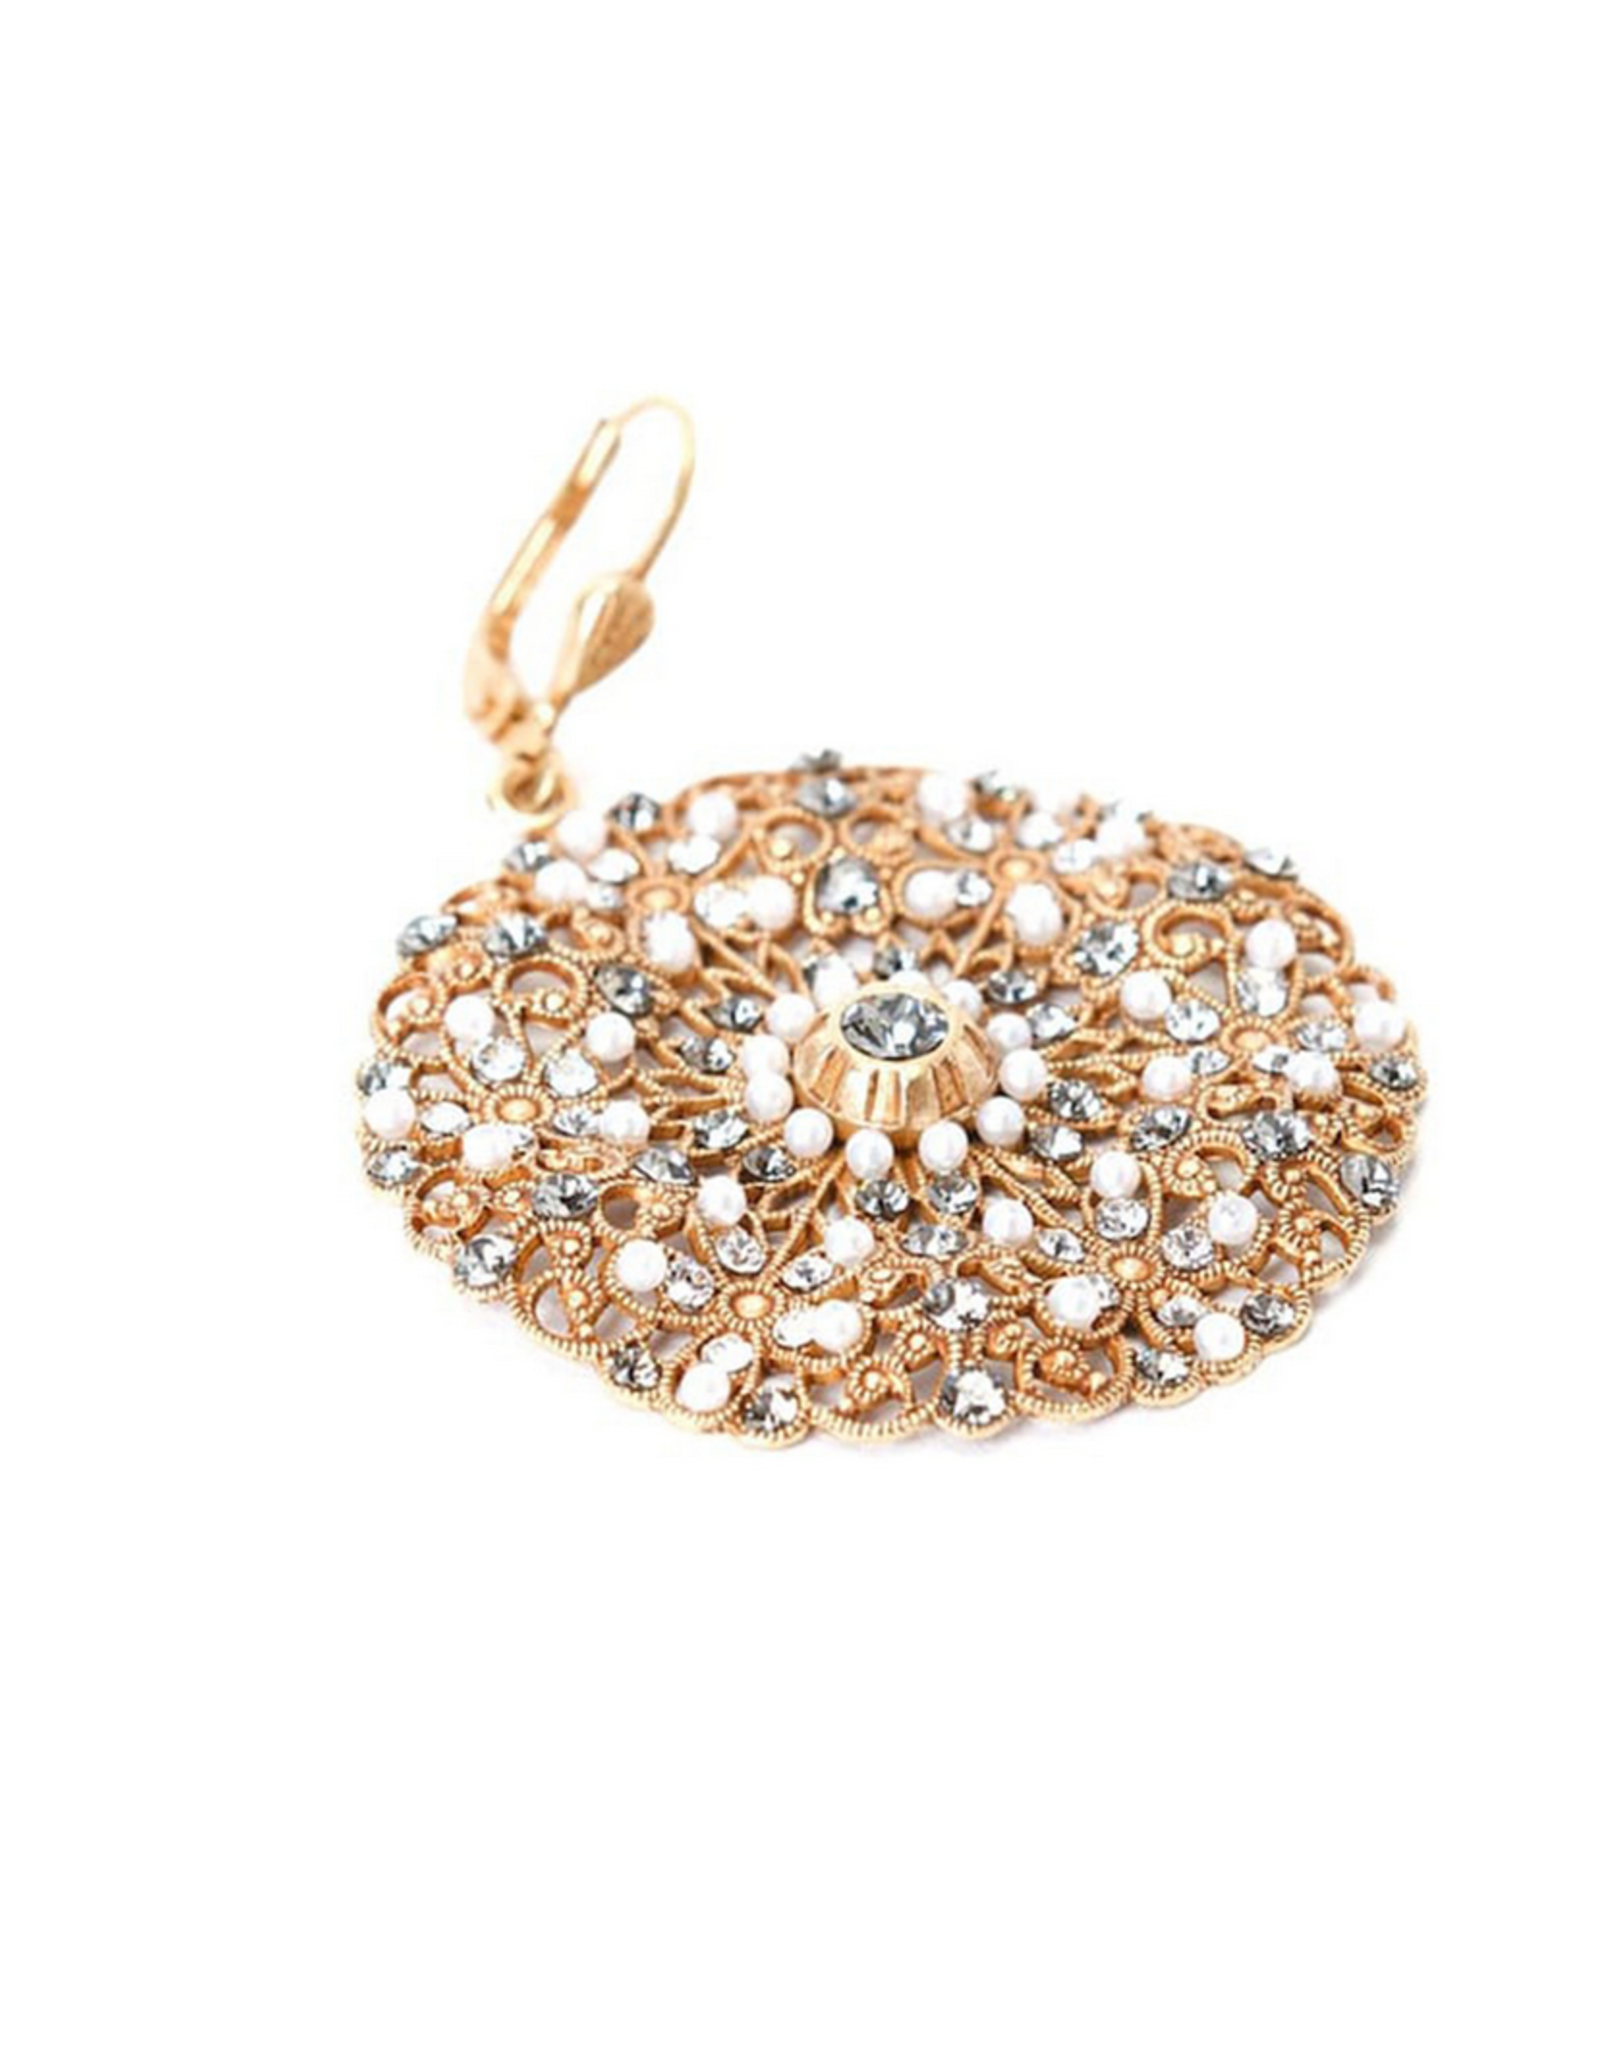 LA VIE PARISIENNE INC EARRING GOLD ROUND LARGE FILEGREE WITH BLUE CRYSTALS